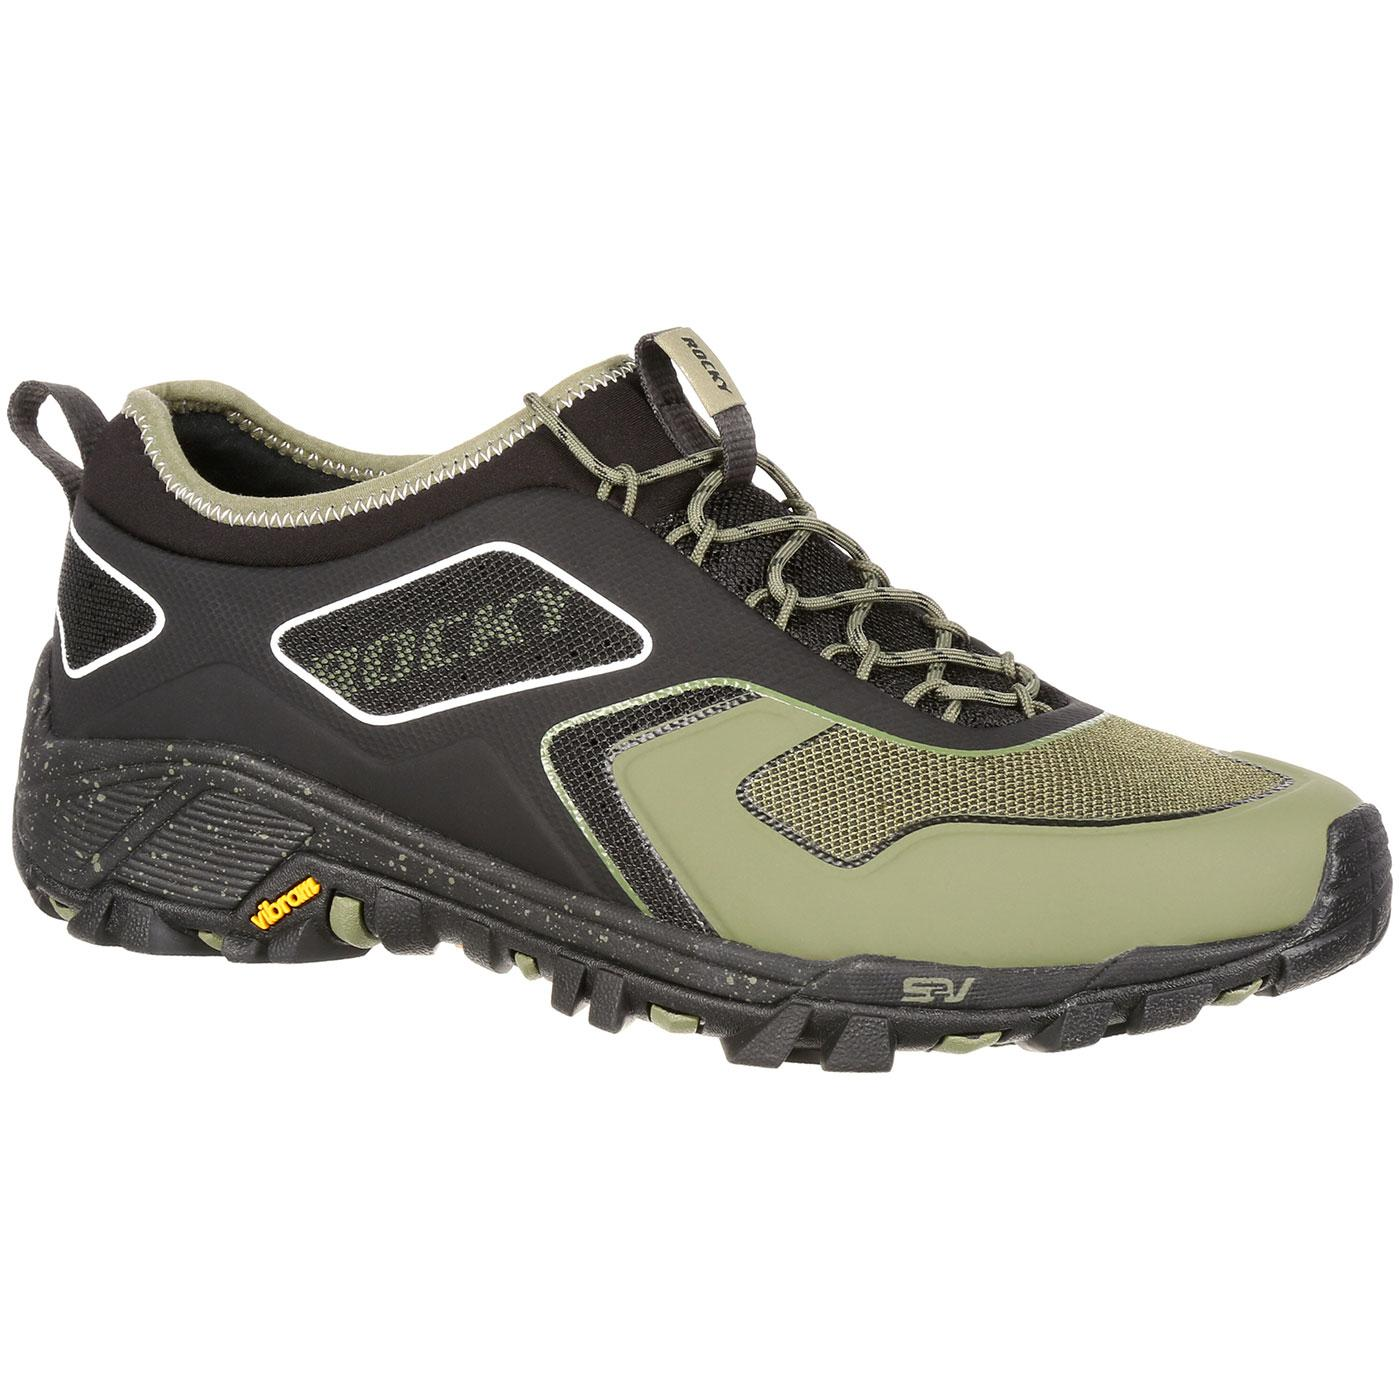 Rocky Mens S2V Olive Black Trail Runner Sneaker Shoe